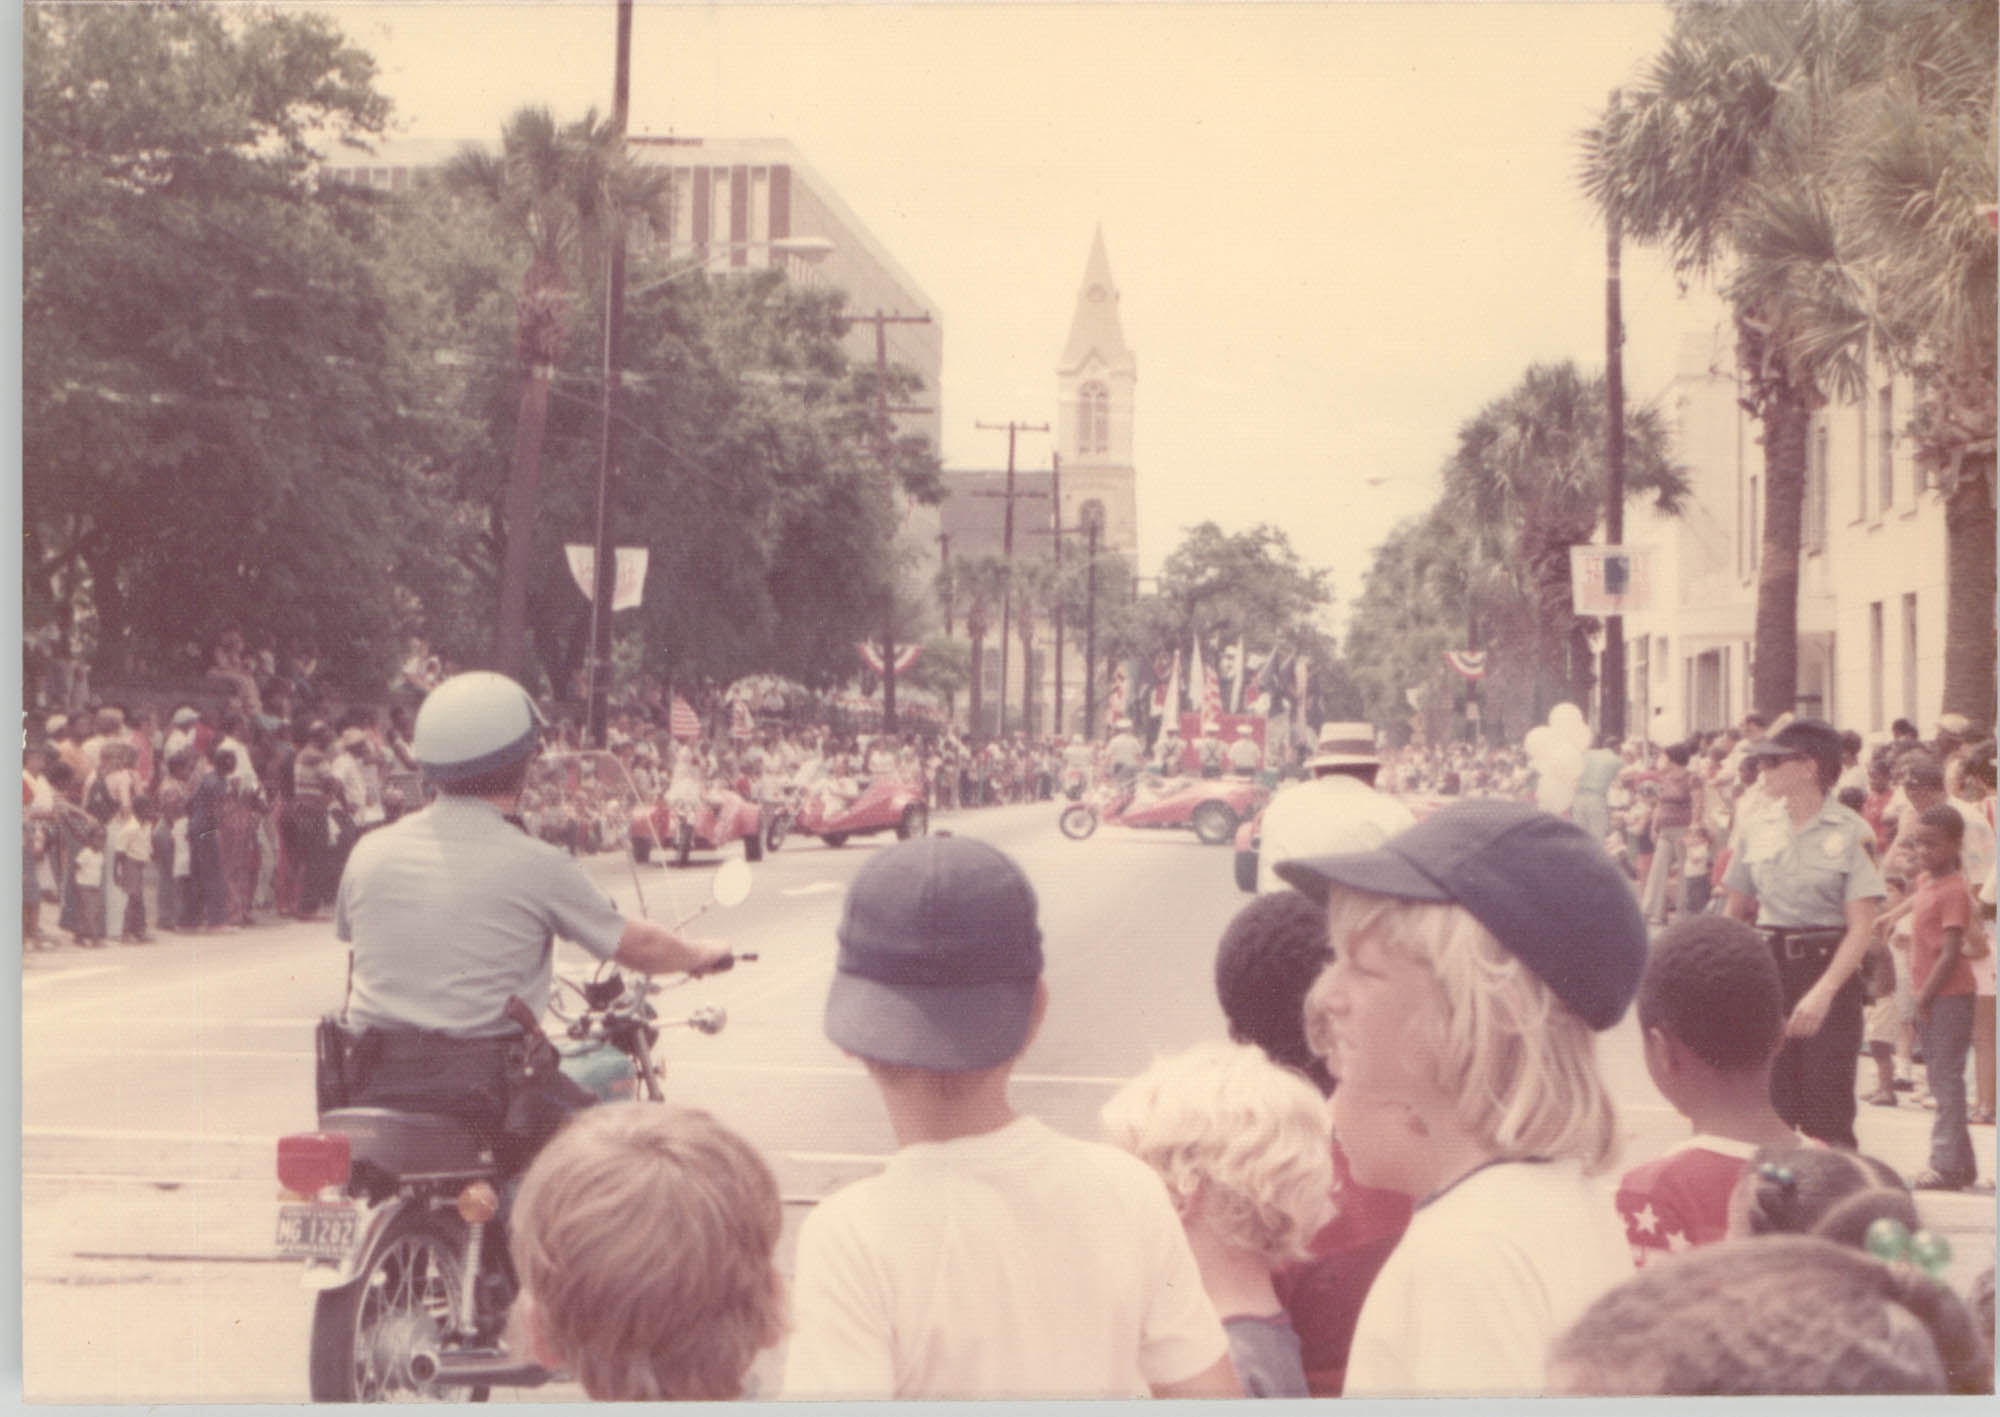 Photograph of July 4th Parade